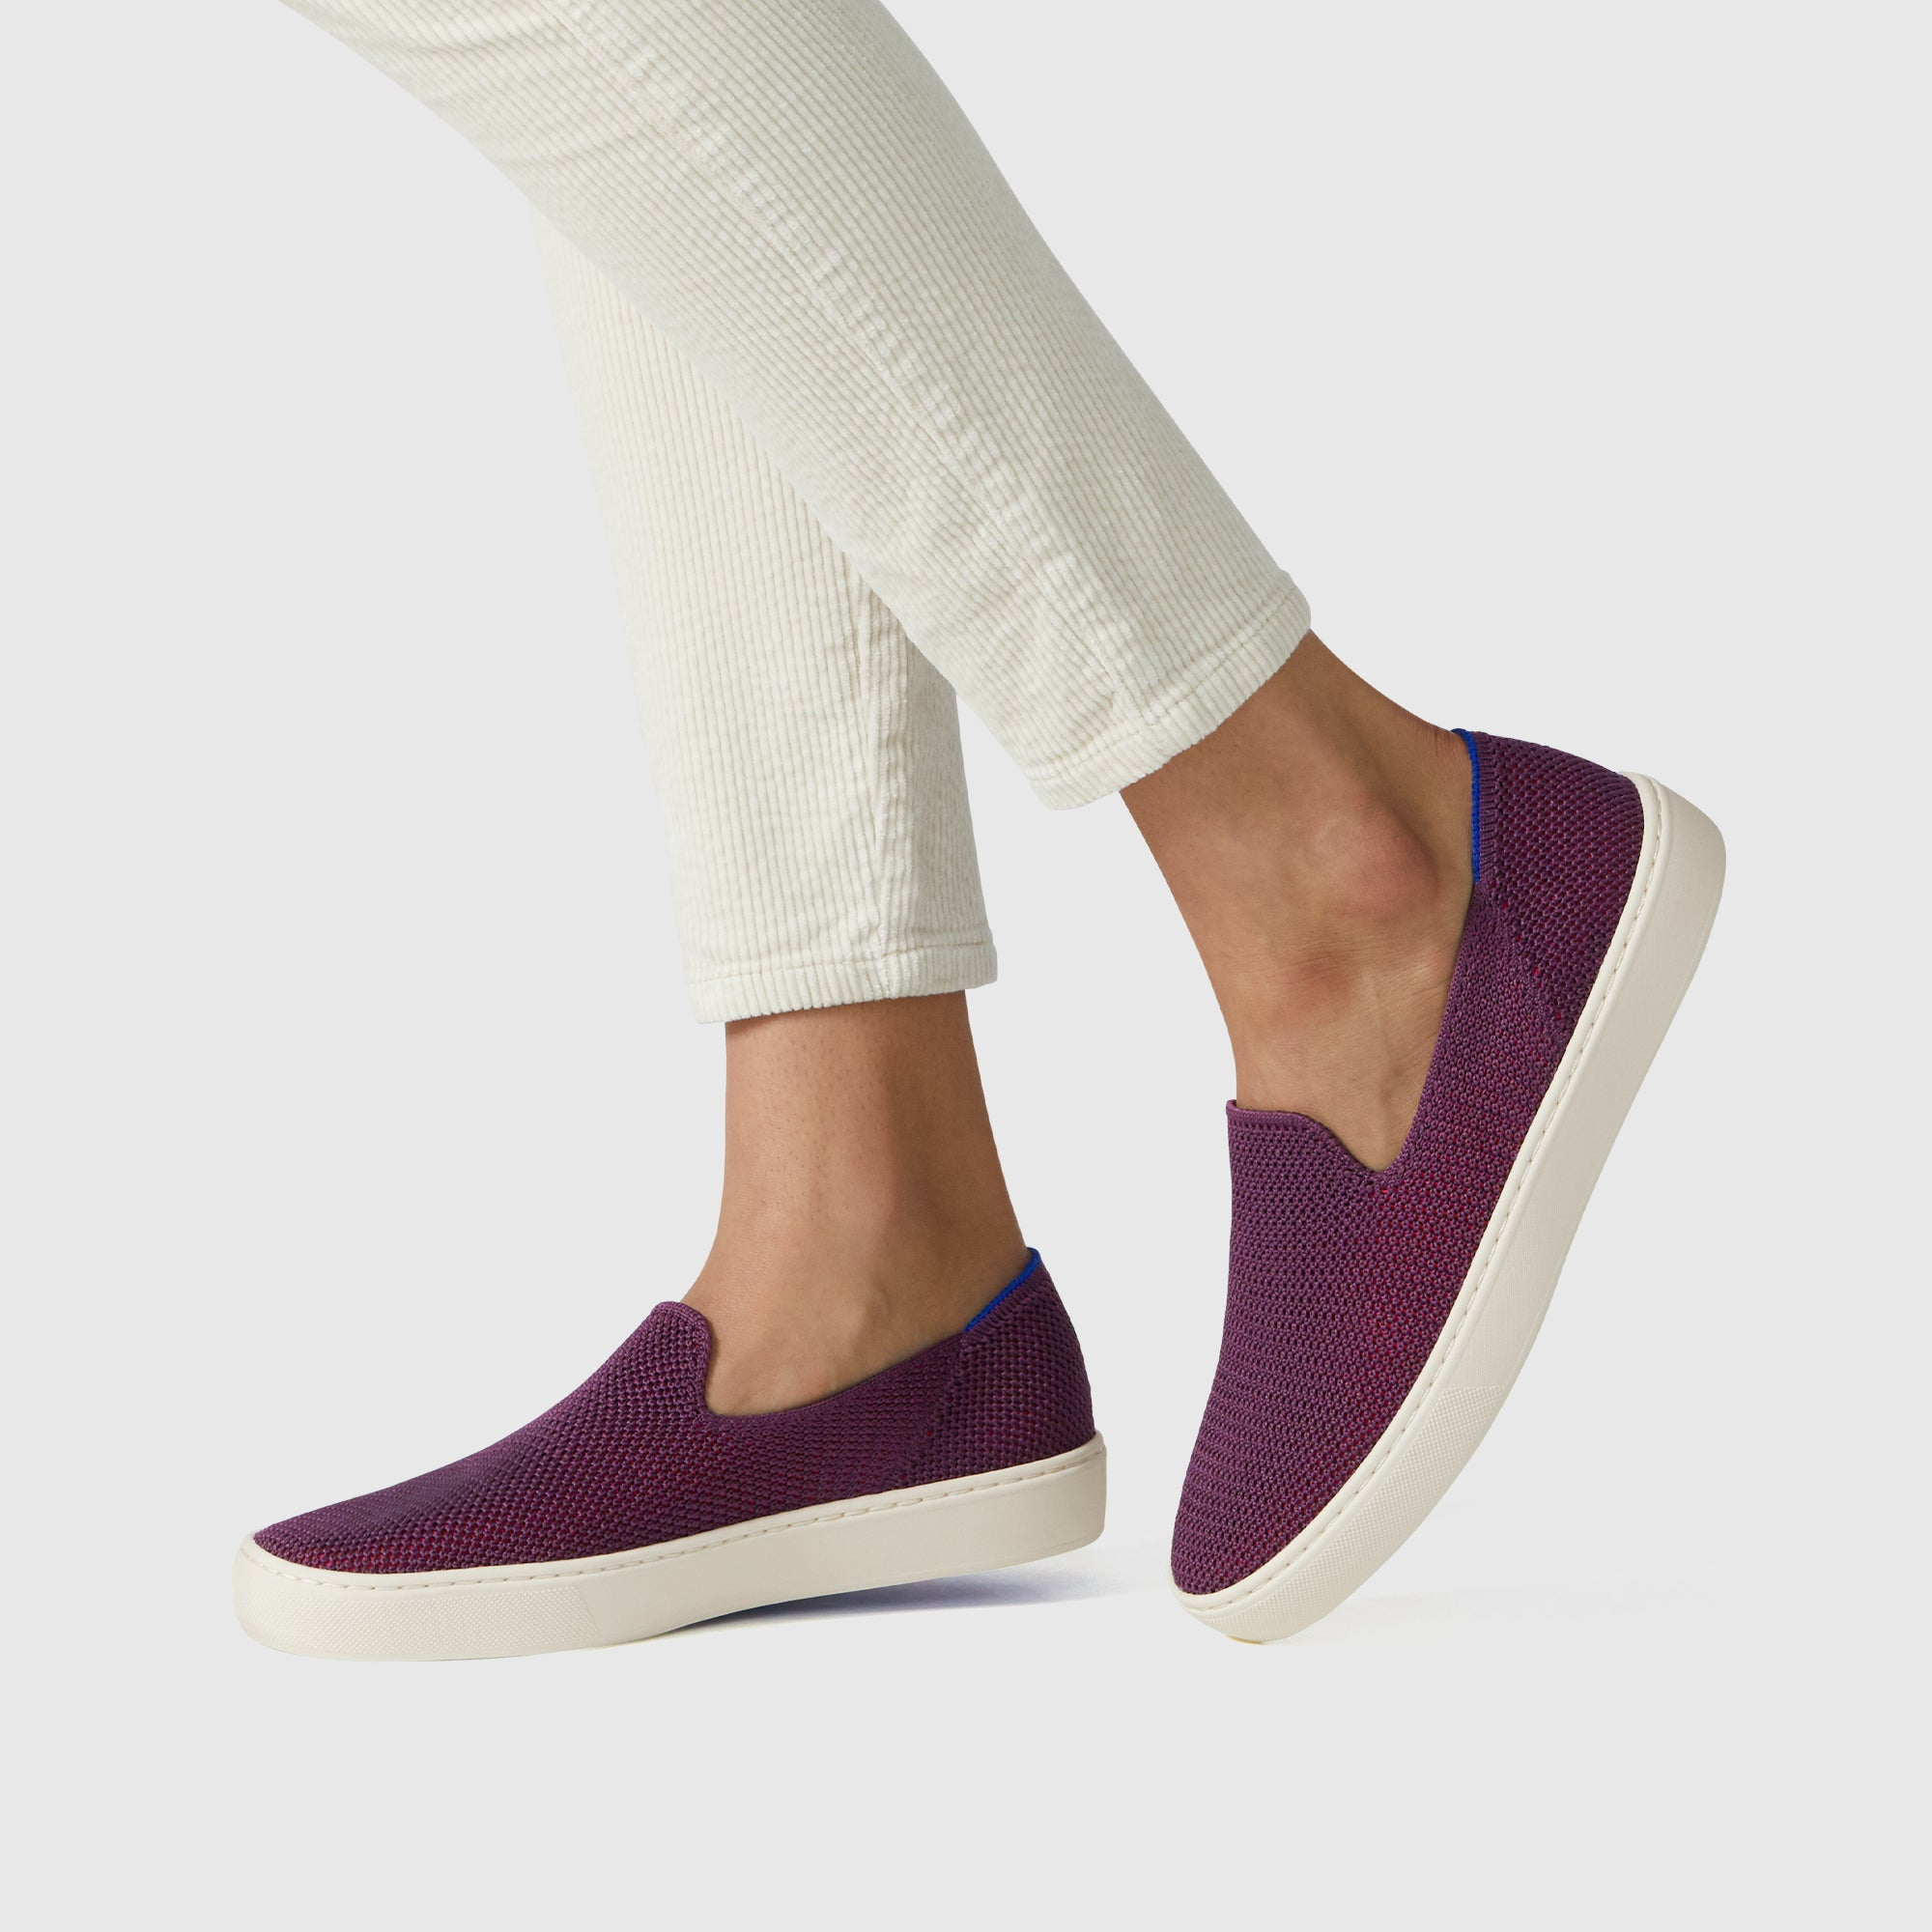 The Sneaker in Berry Lattice Stitch shown on-model at an angle.